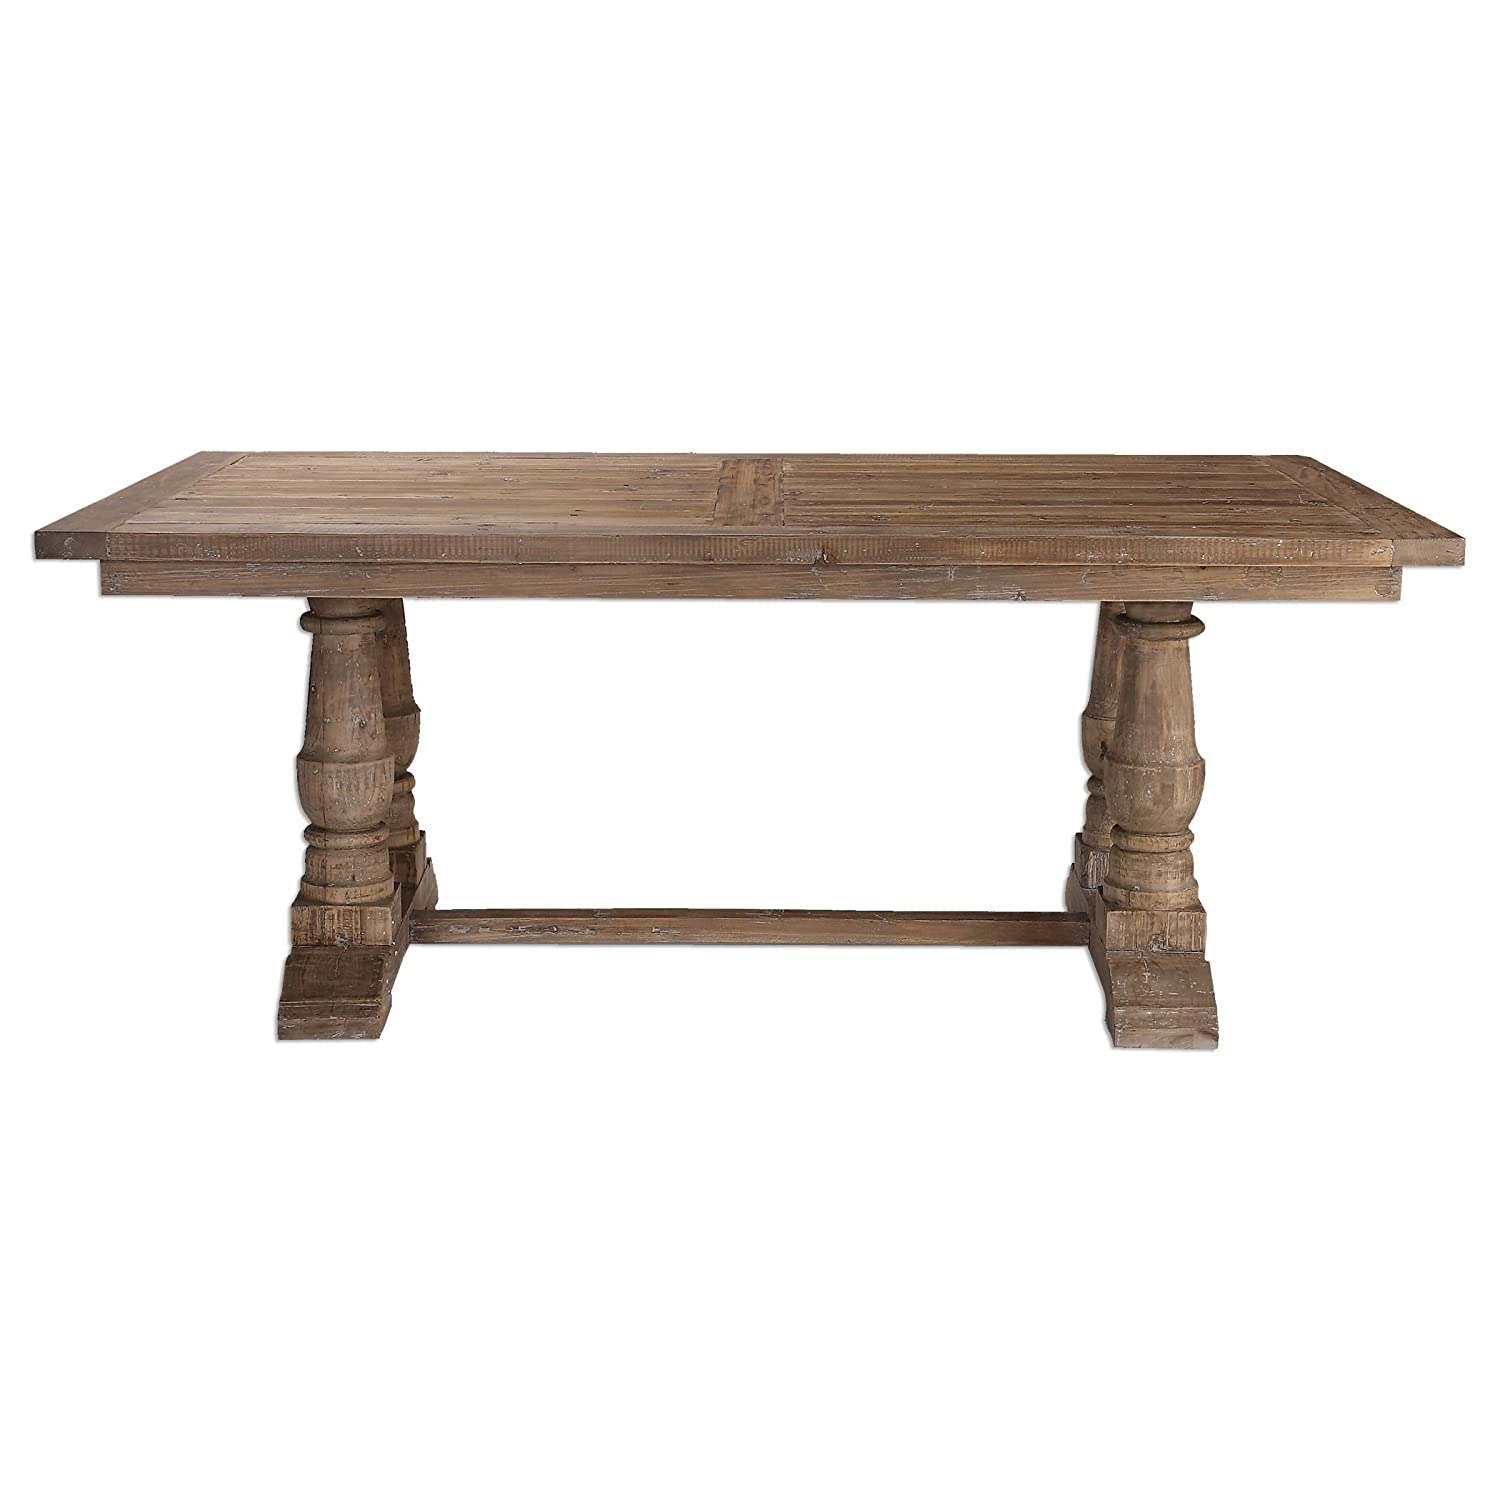 Christmas Tablescape Décor - Rustic baluster column pine farmhouse dining table